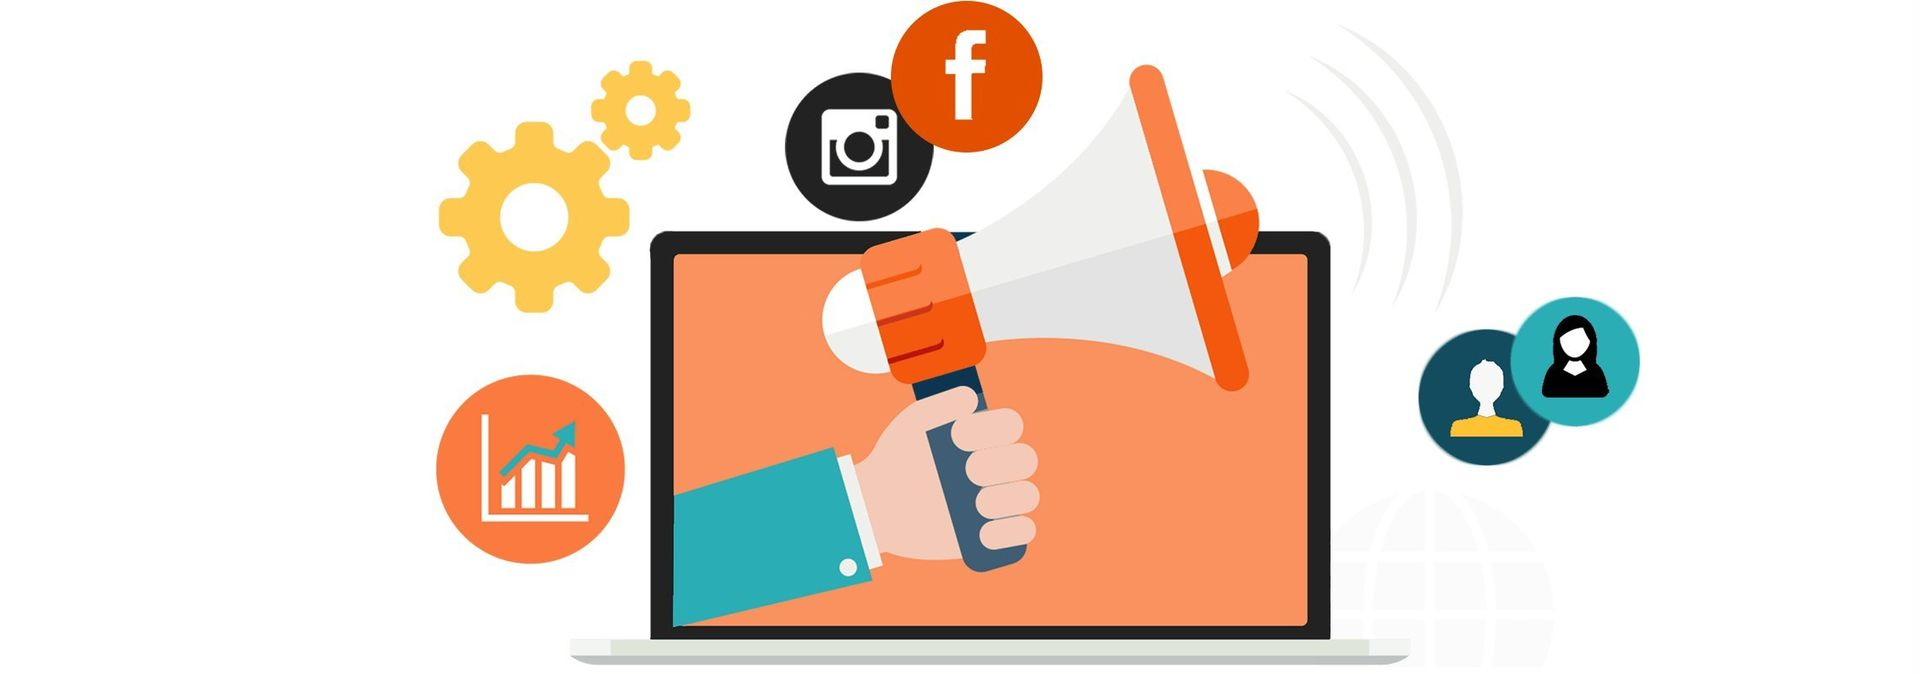 Defeat Your Competitors With One Of These Social Media Marketing Guidelines